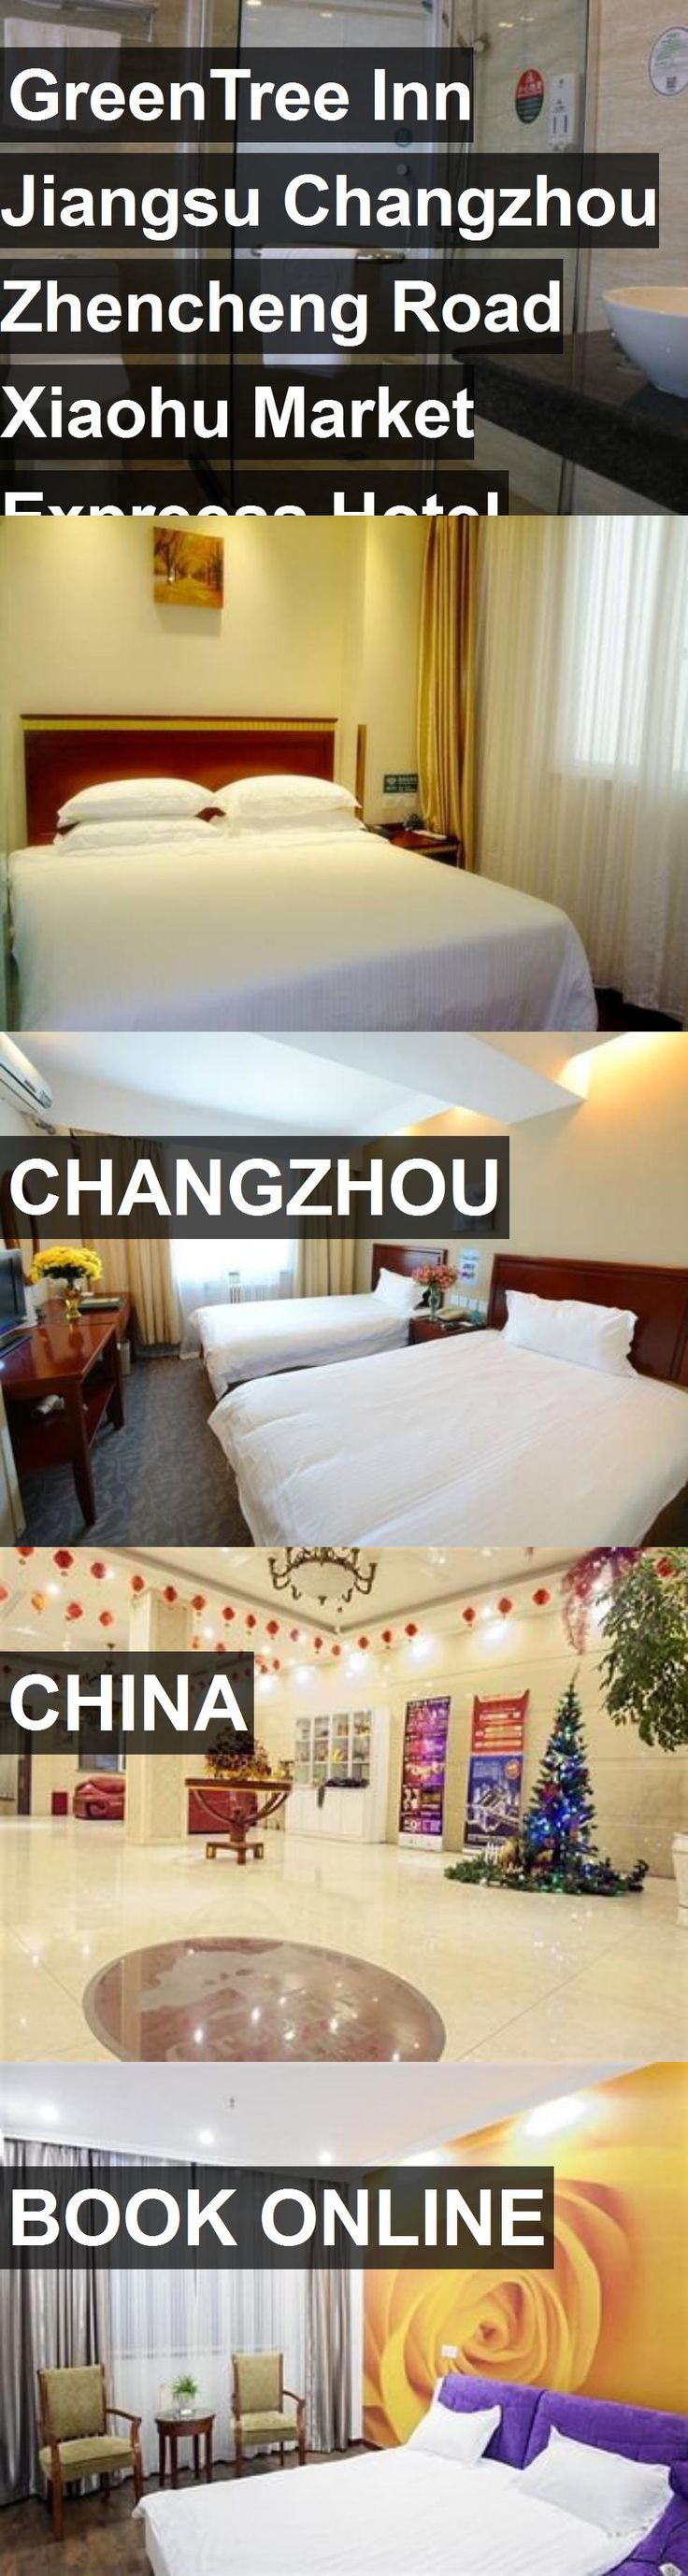 GreenTree Inn Jiangsu Changzhou Zhencheng Road Xiaohu Market Expreess Hotel in Changzhou, China. For more information, photos, reviews and best prices please follow the link. #China #Changzhou #travel #vacation #hotel